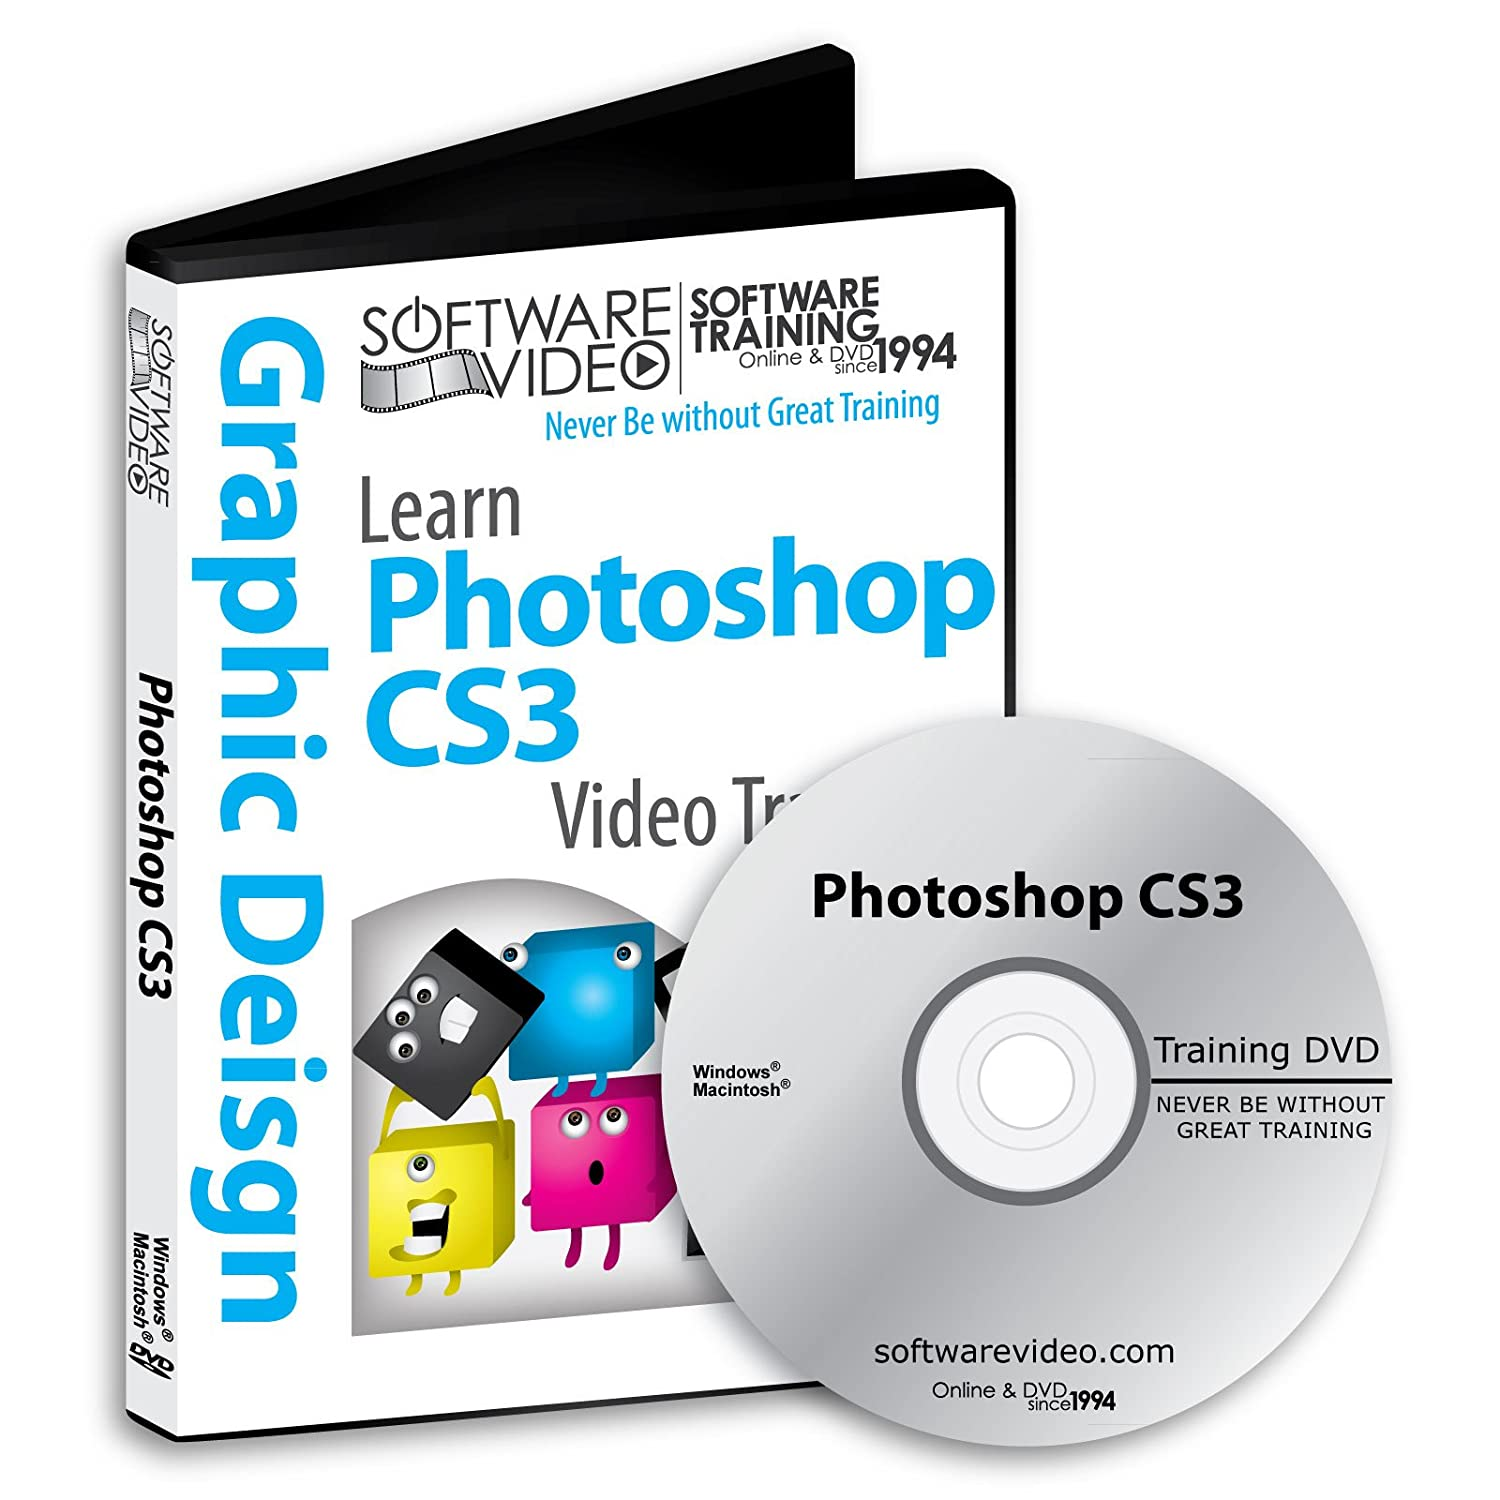 Amazon software video learn adobe photoshop cs3 training dvd amazon software video learn adobe photoshop cs3 training dvd christmas holiday sale 60 off training video tutorials dvd over 8 hours of video baditri Gallery